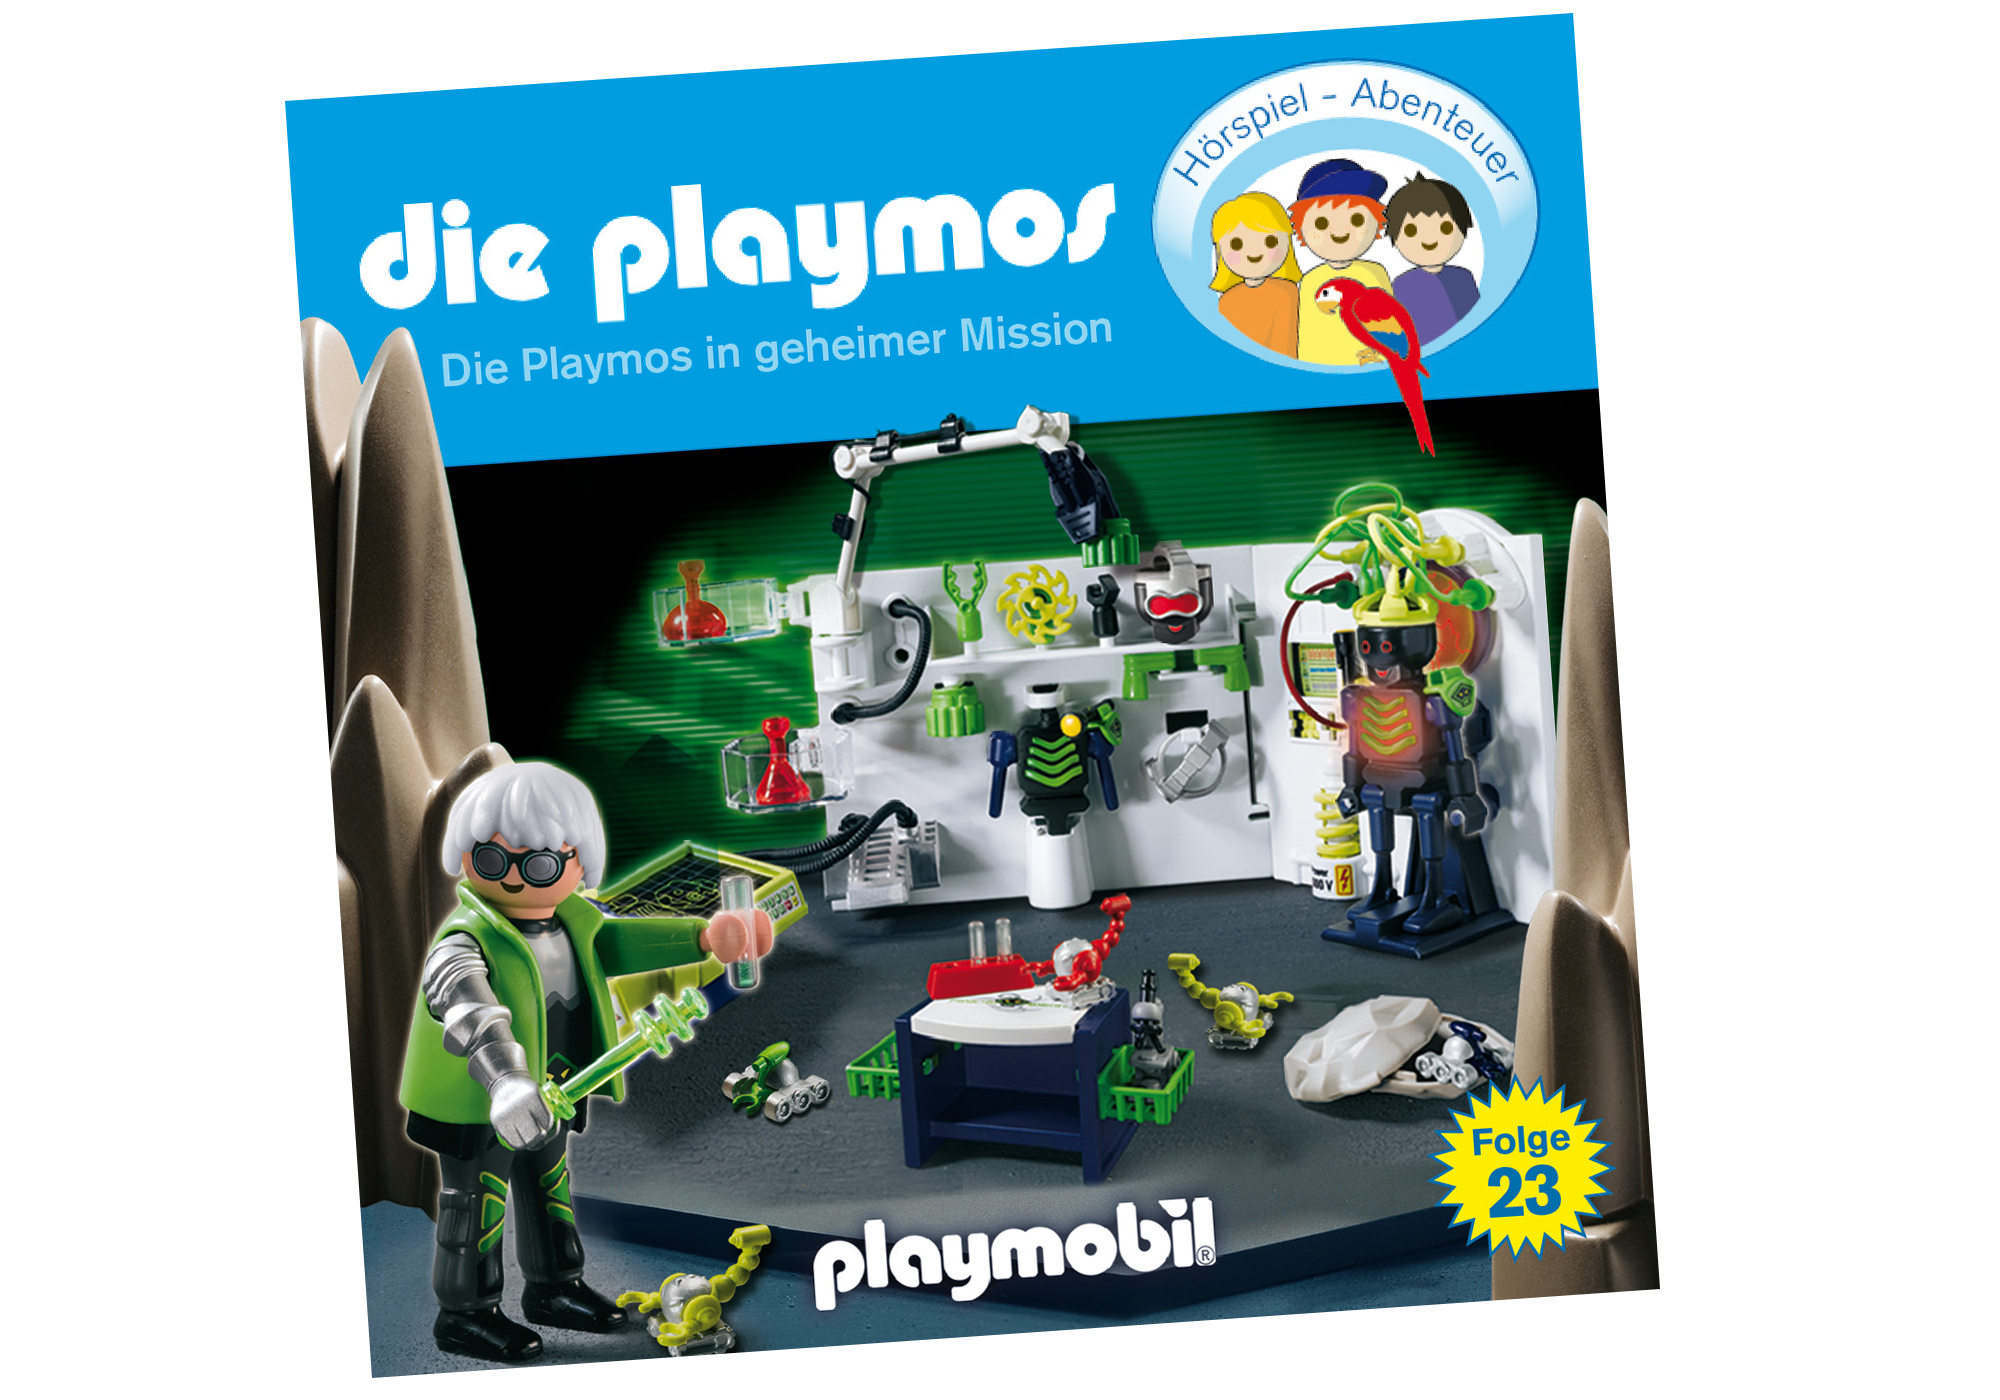 http://media.playmobil.com/i/playmobil/80329_product_detail/Die Playmos in geheimer Mission (23) - CD